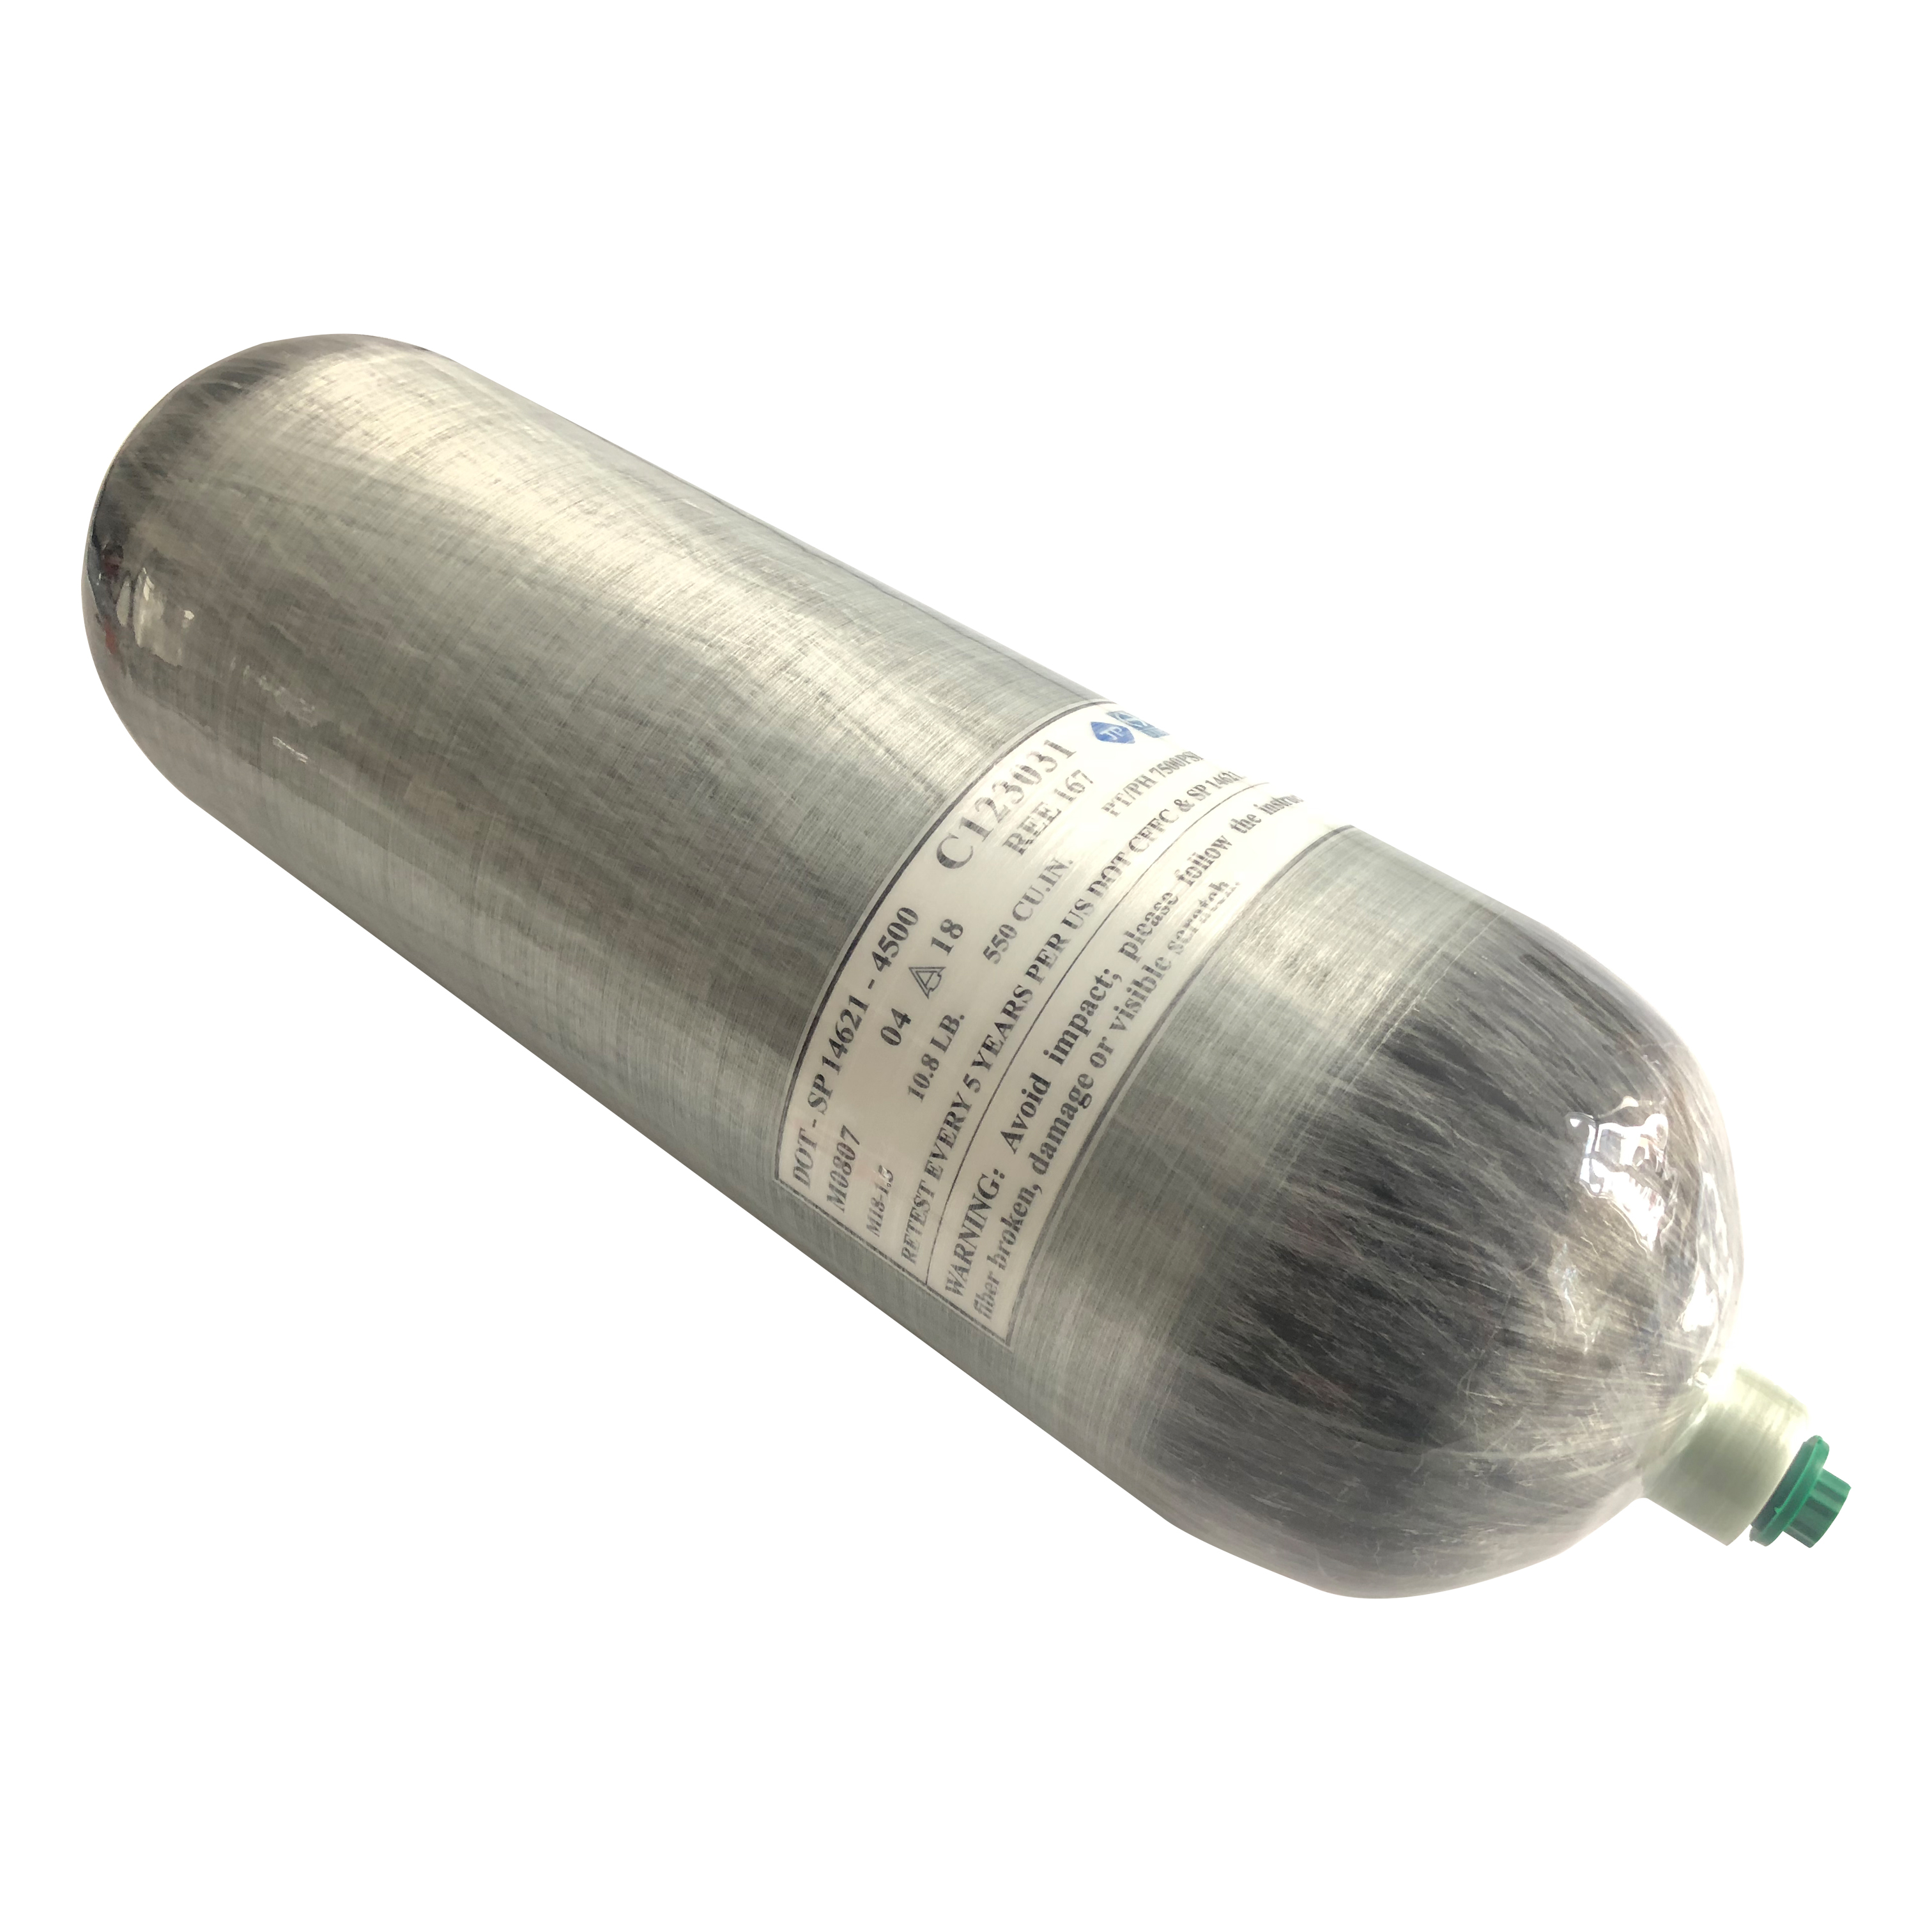 AC2090 4500spi Certification Gas Cylinder 9L Air Cylinder PCP/Scuba/Paintball Tank SCBA Bottle Airforce Condor Pcp Air Rifle